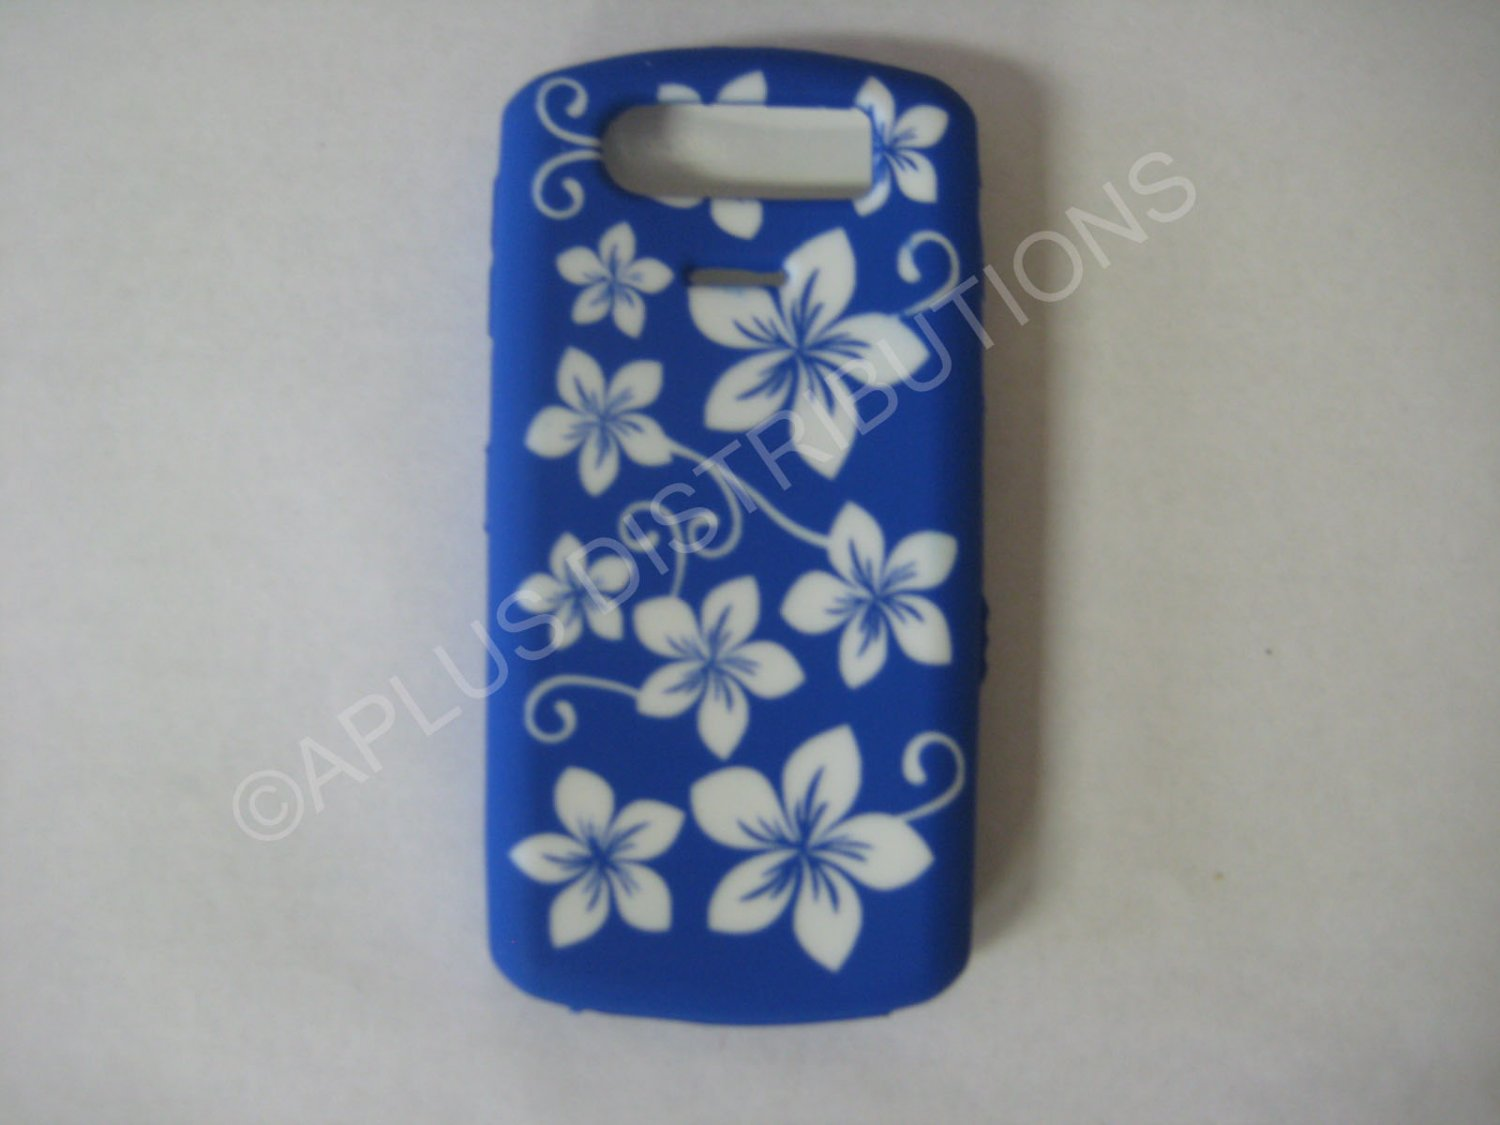 New Dark Blue Hawaiian Print Flower Silicone Cover For Blackberry 8120/8110/8130 - (0197)